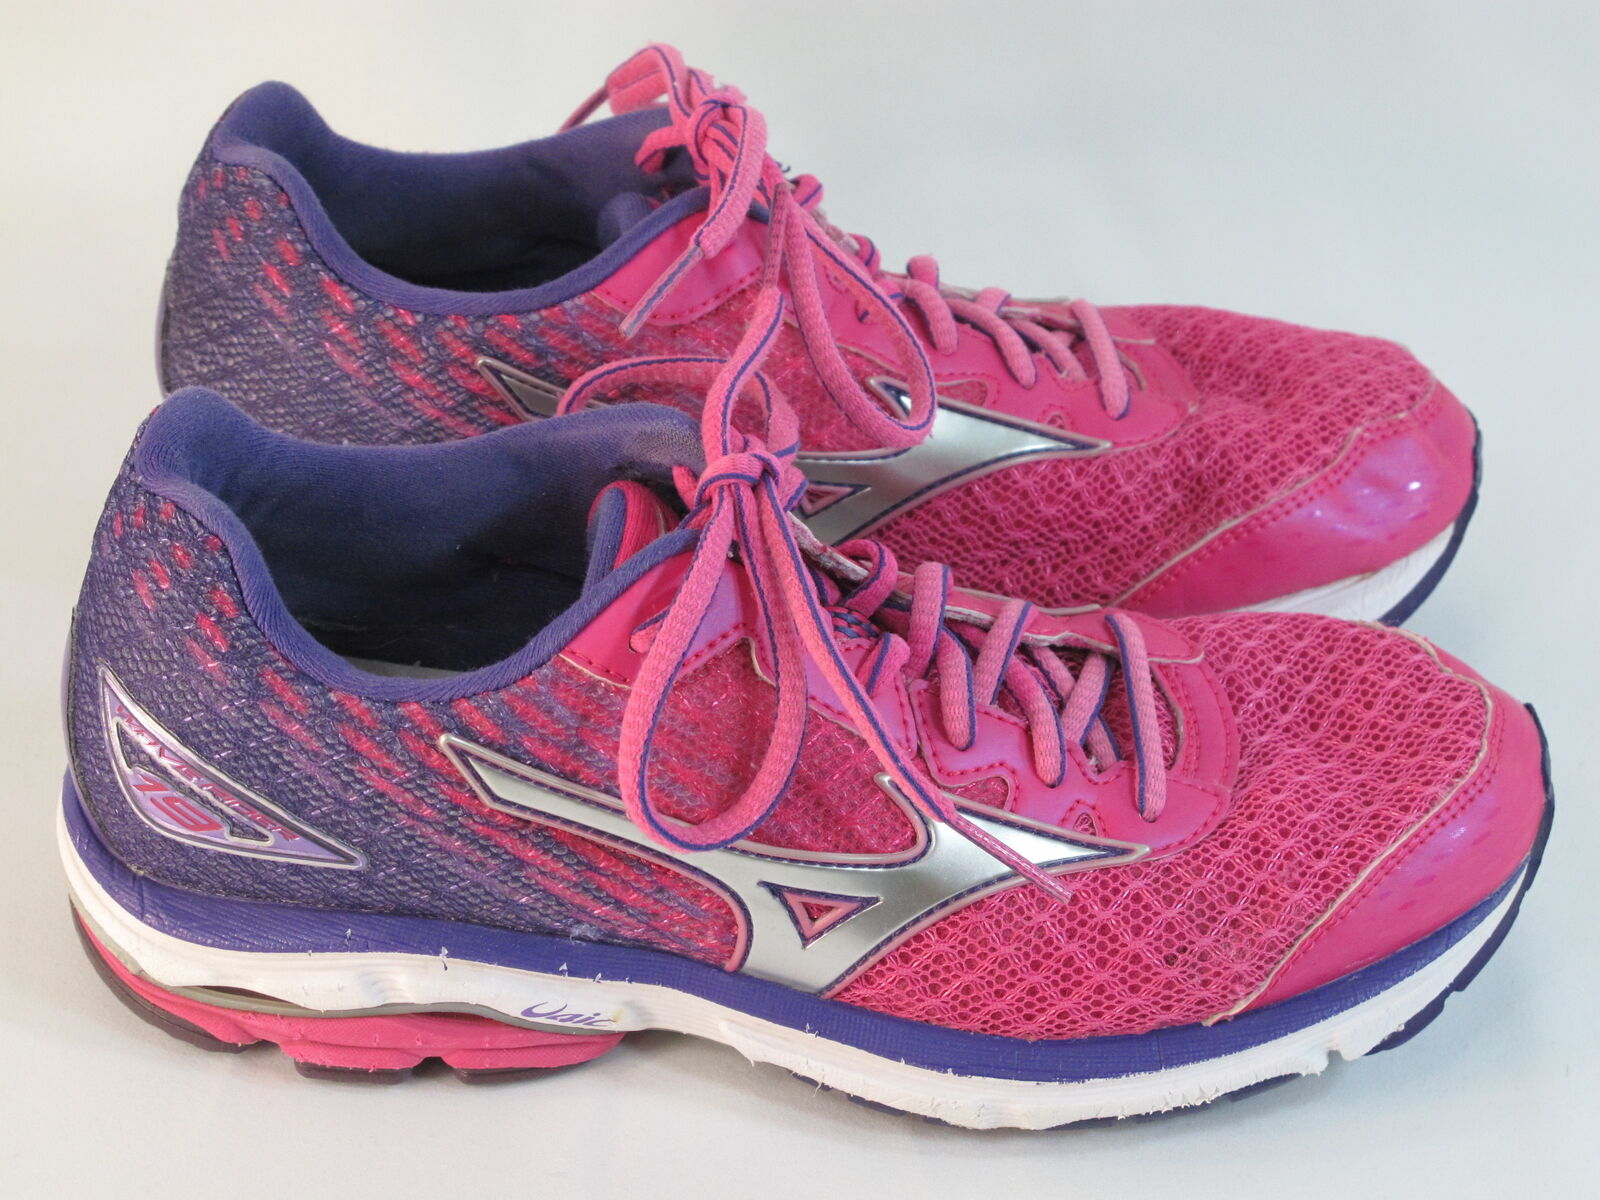 Mizuno Wave Rider 19 Running shoes Women's Size 8.5 US Excellent Plus Condition